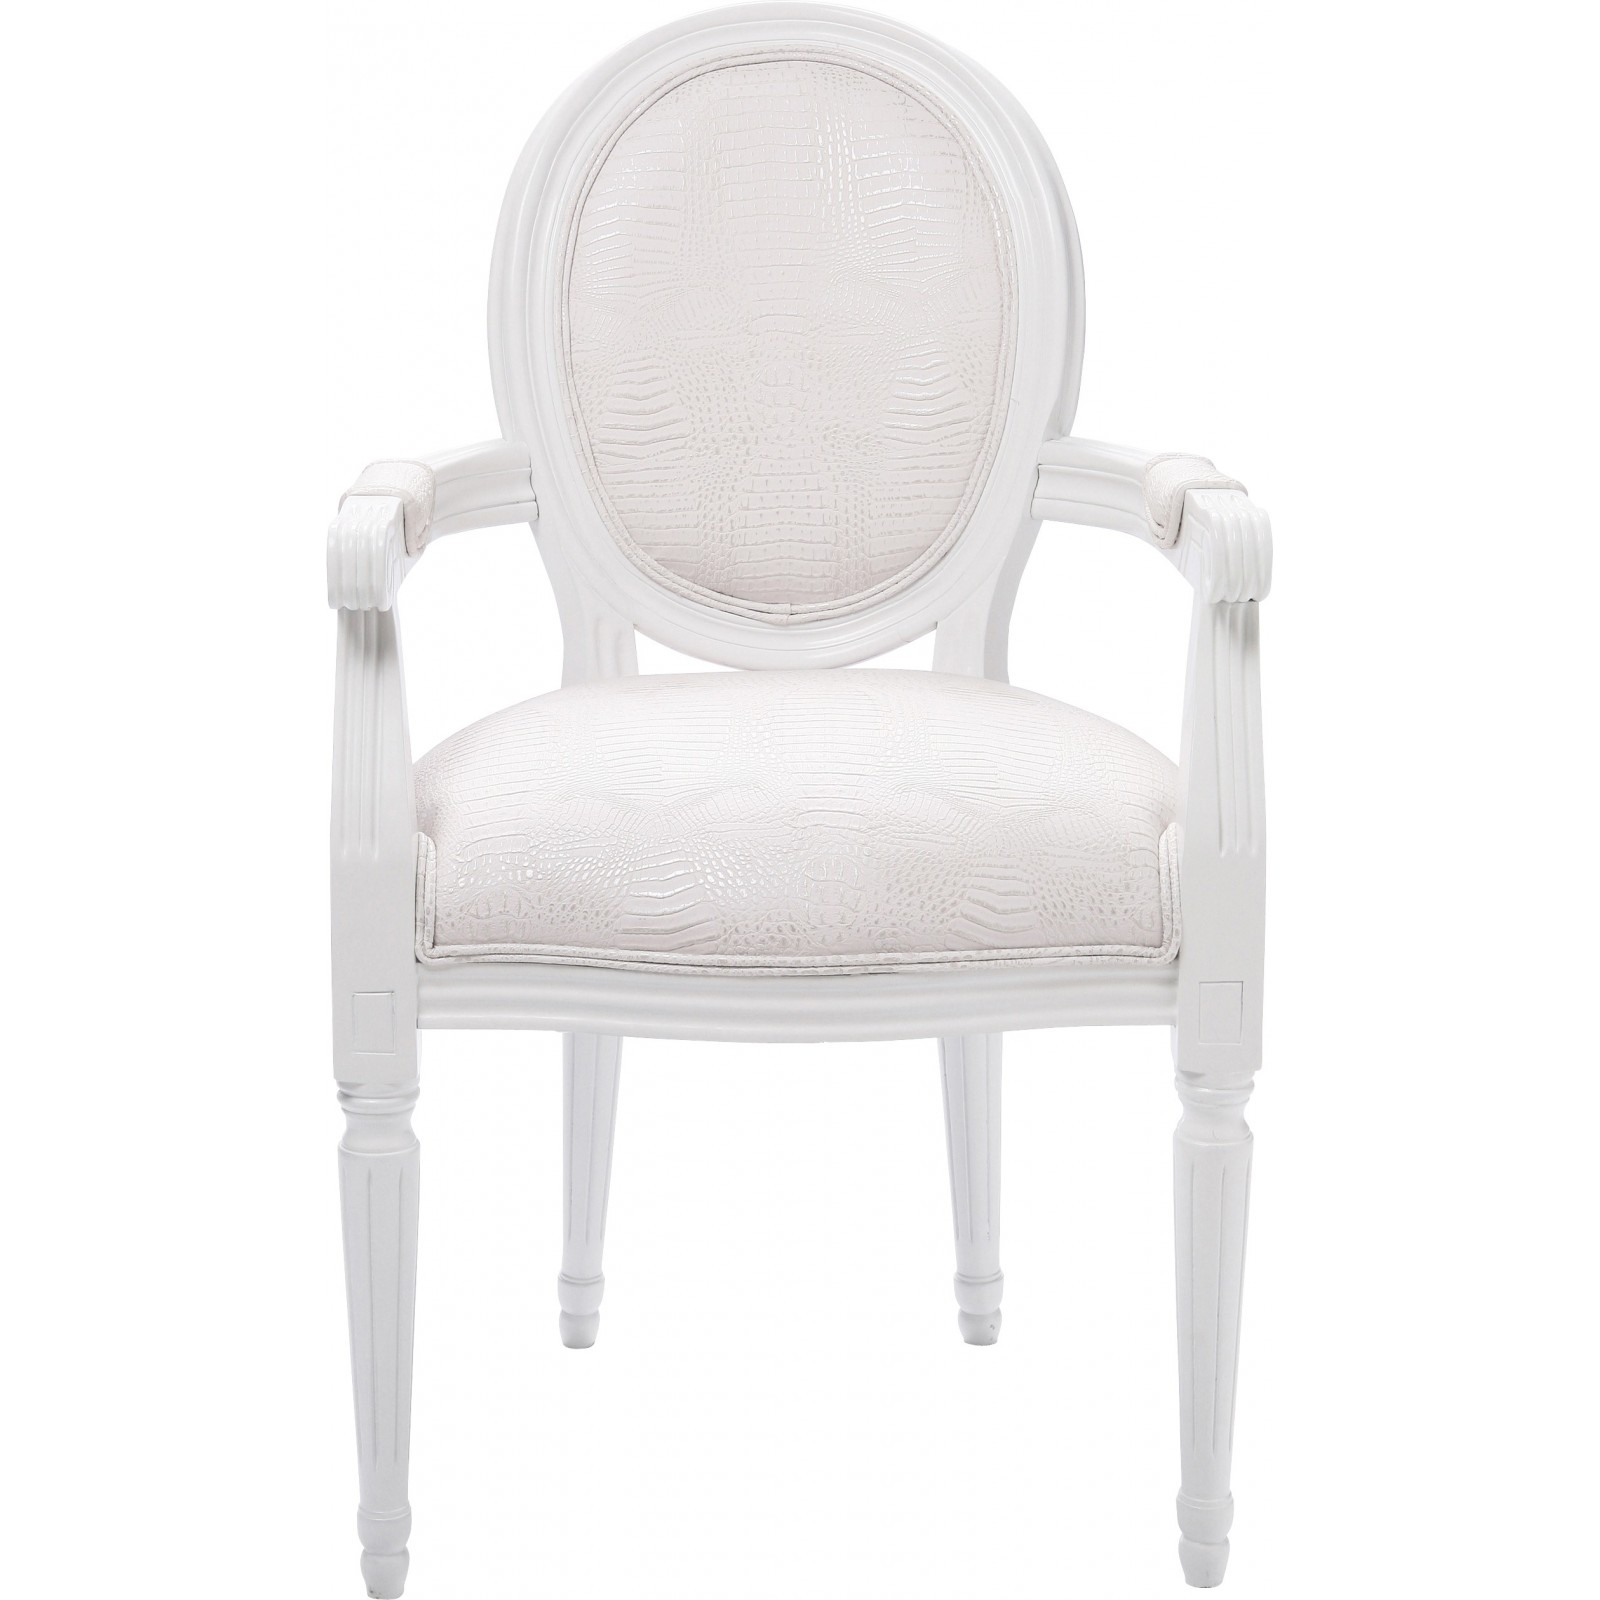 Chaise avec accoudoirs baroque blanche louis kare design for Chaise blanche